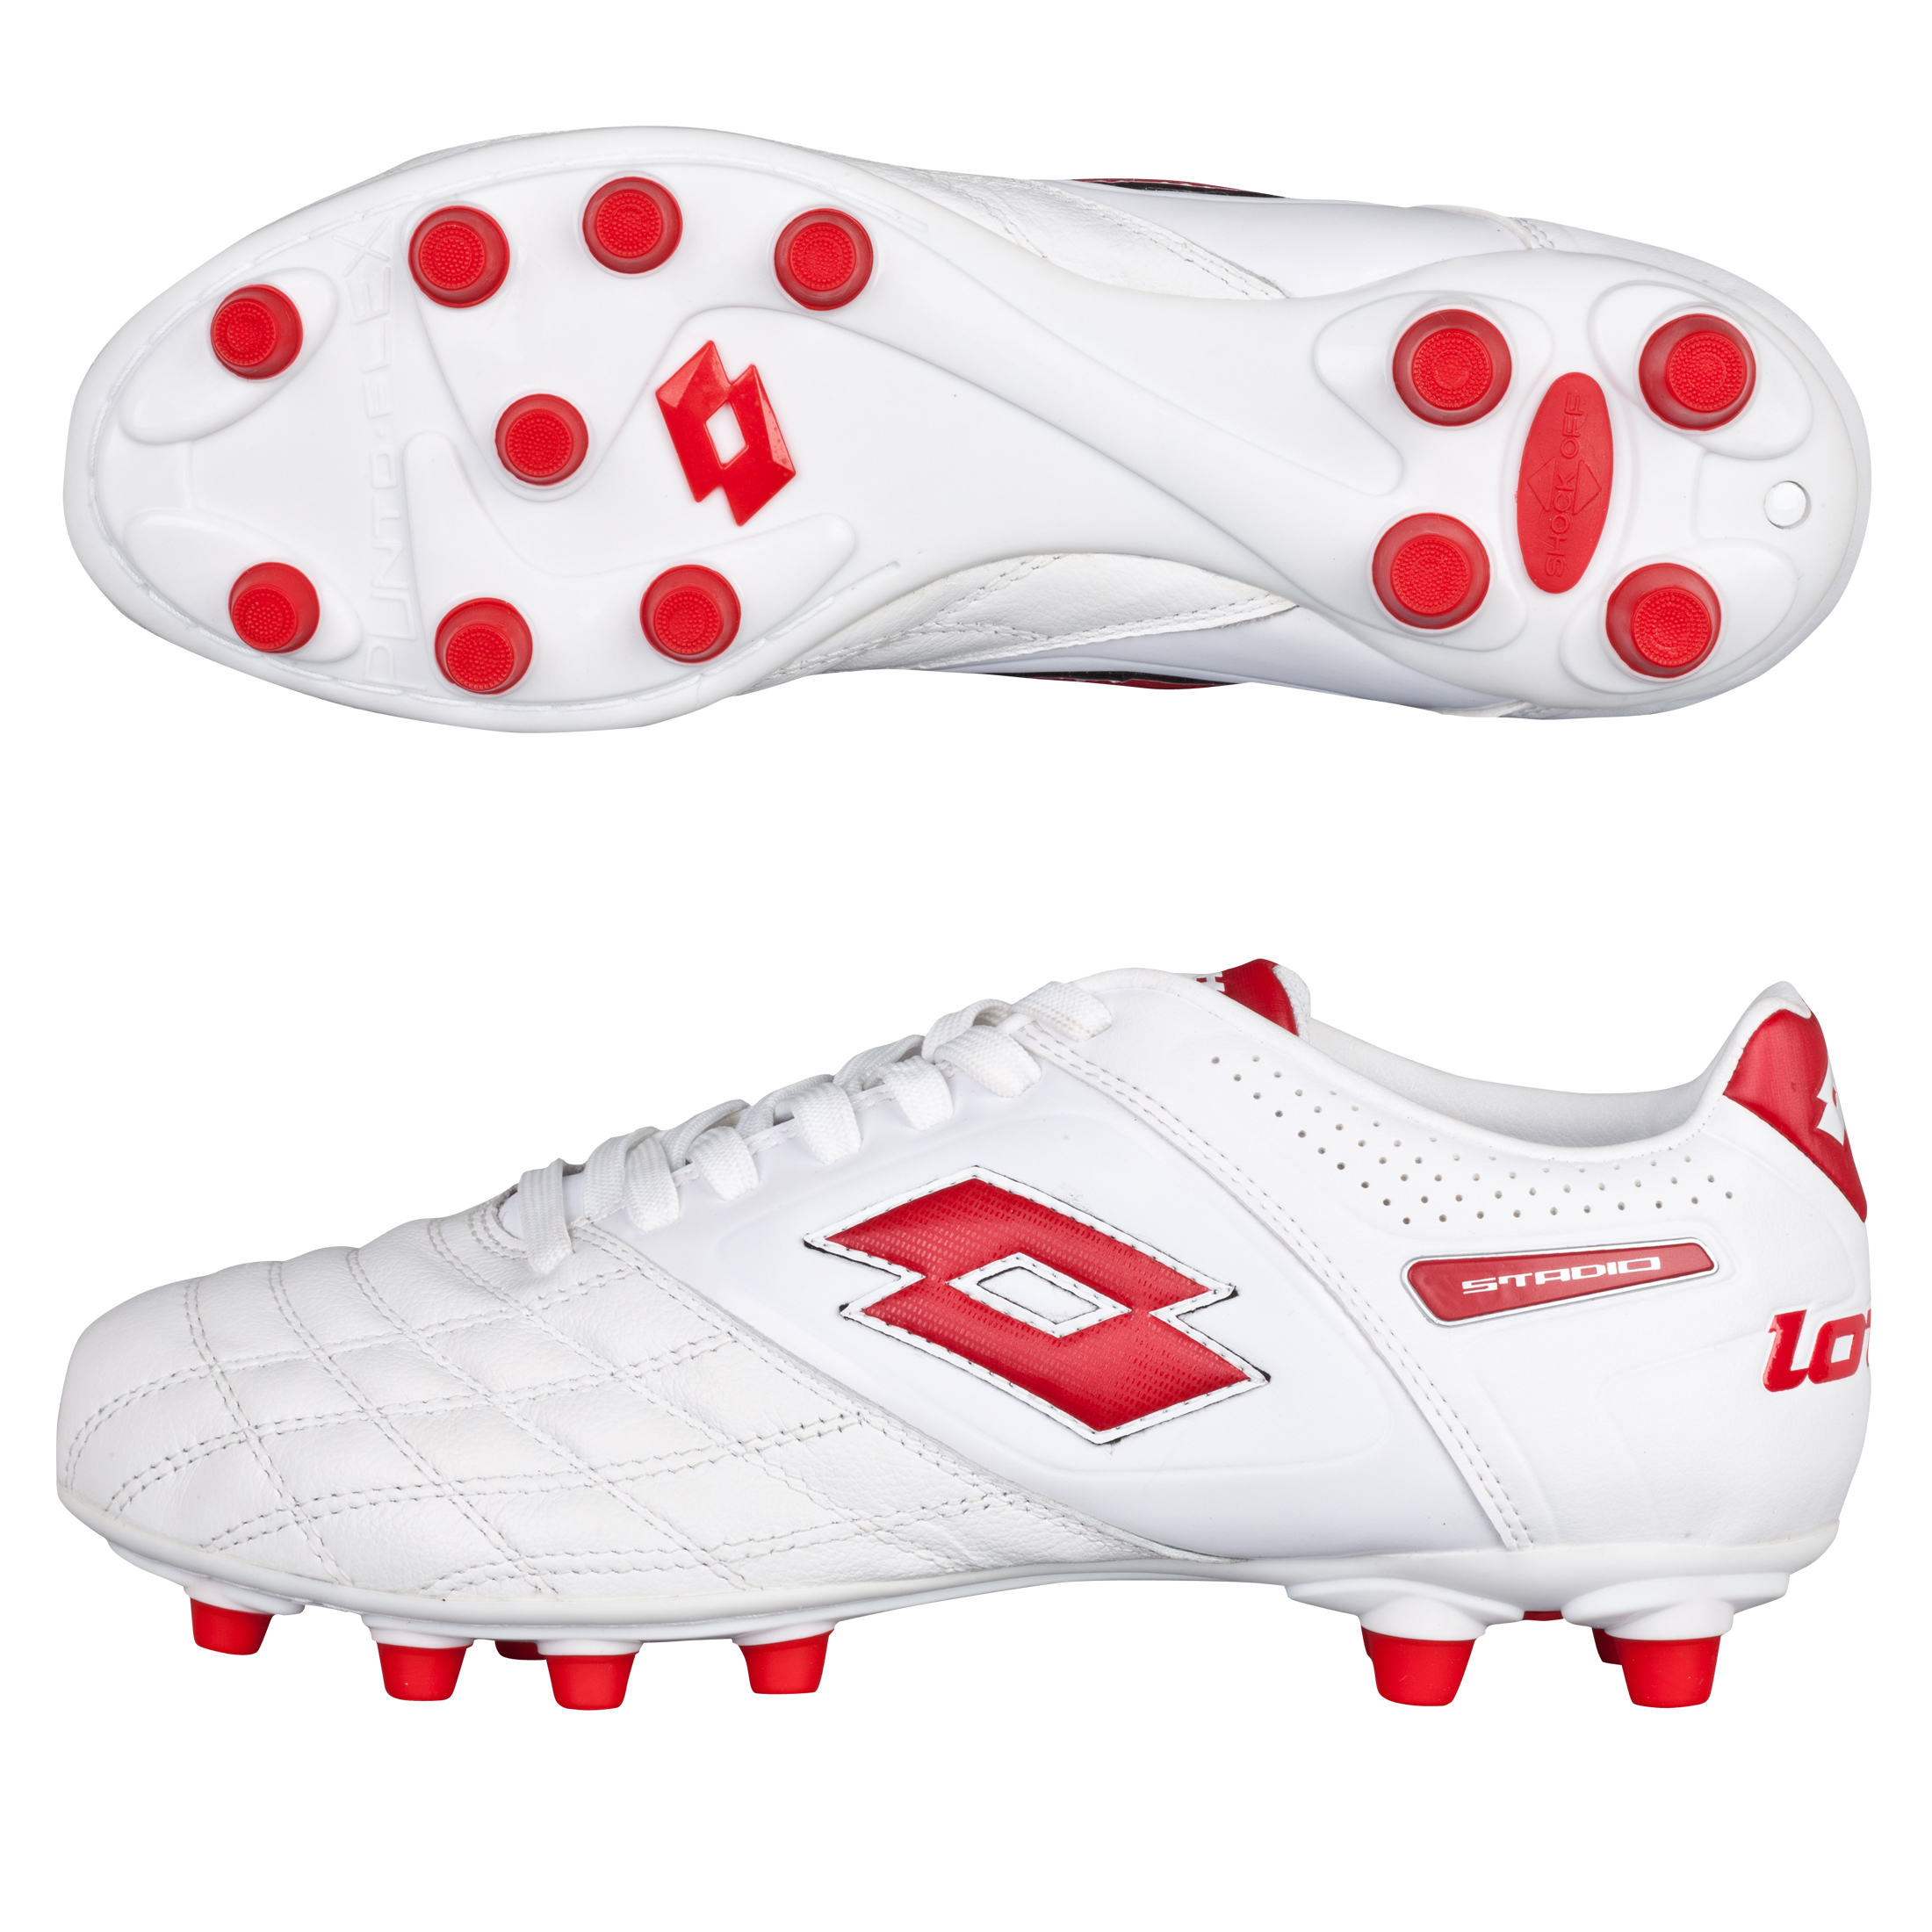 Lotto Stadio Potenza II 300 Firm Ground Football Boots - White/Risk Red